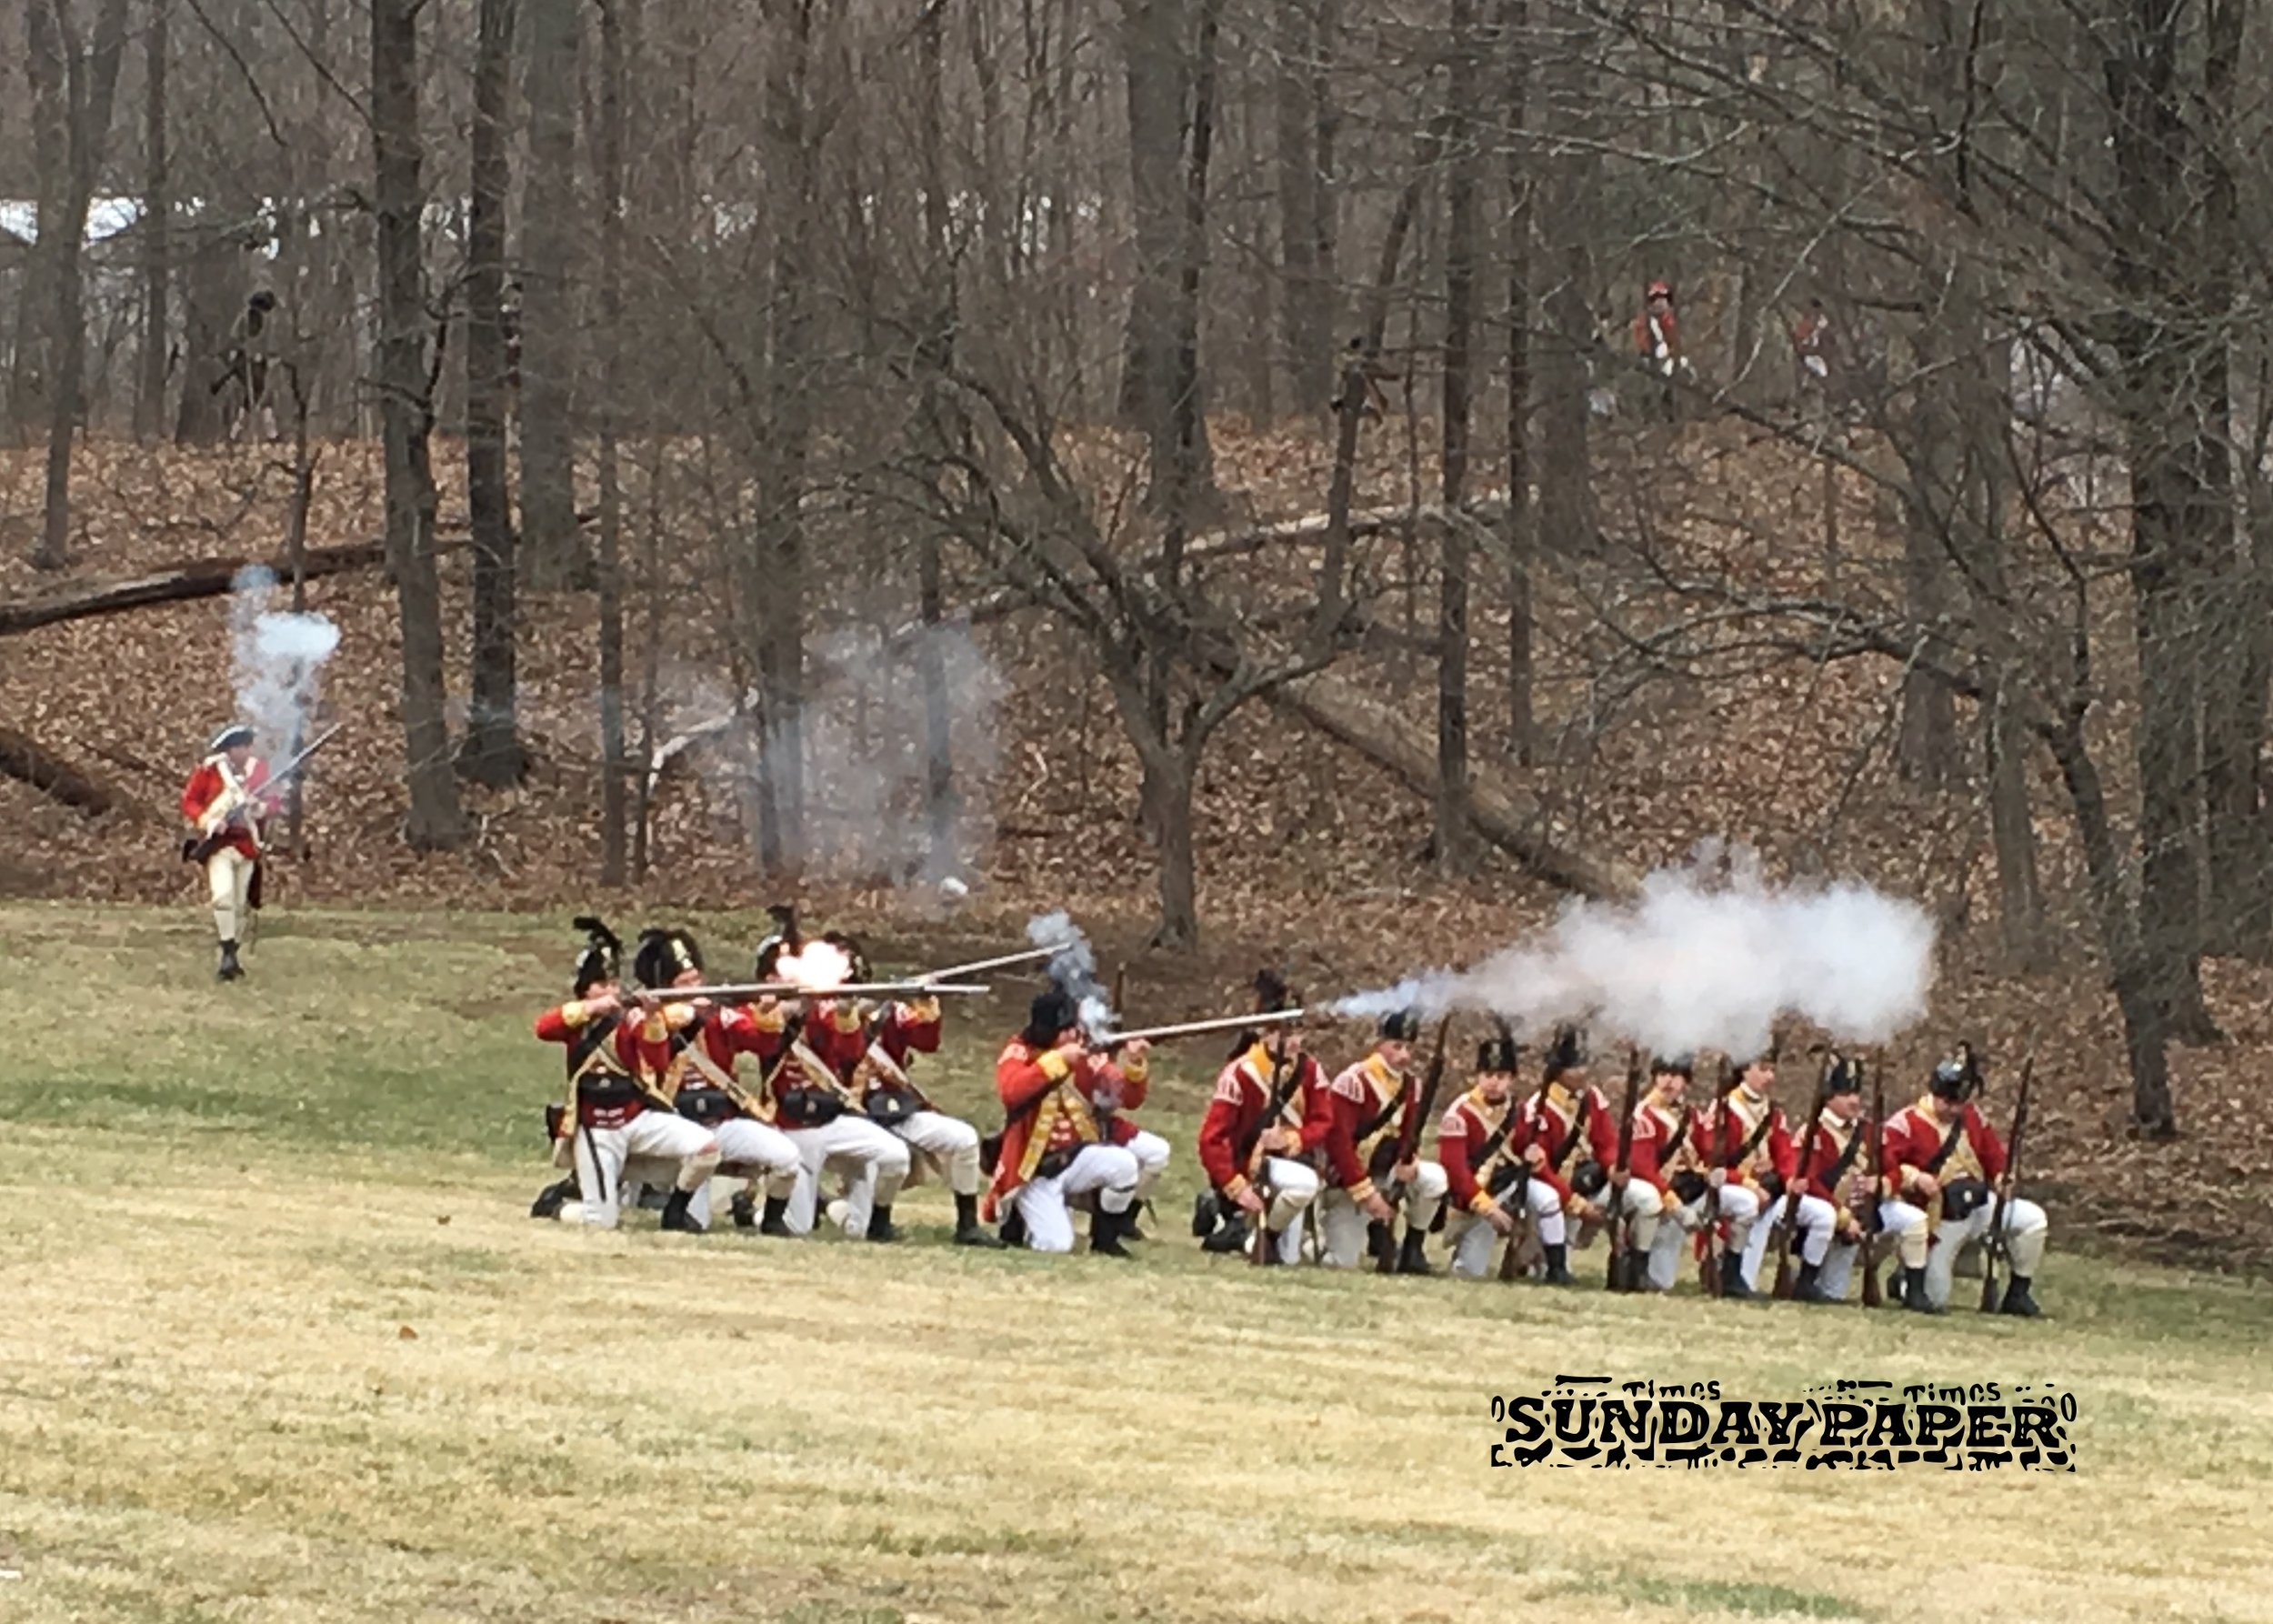 We did check out a re-enactment on Saturday in Lexington.